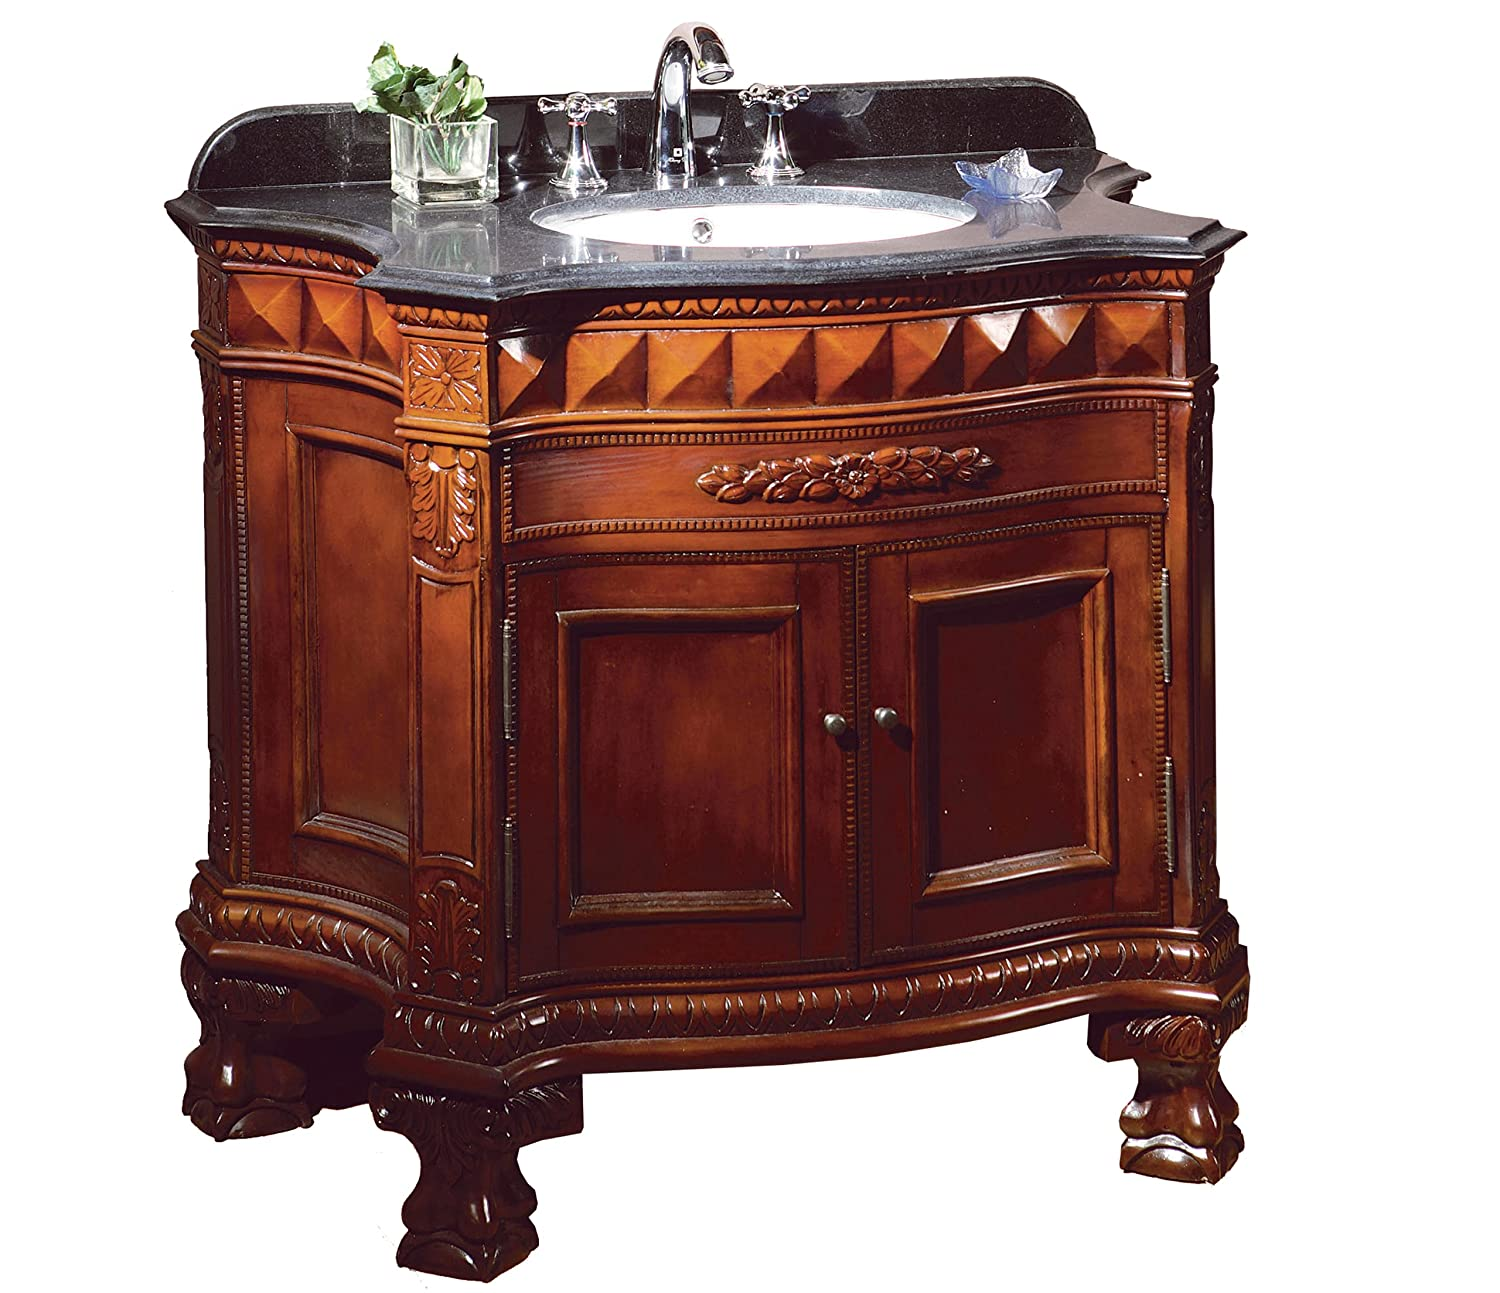 Ove Decors BuckinghamSGL VB 36-Inch Wide Vanity with Black Marble Countertop and Ceramic Basin, Dark Cherry